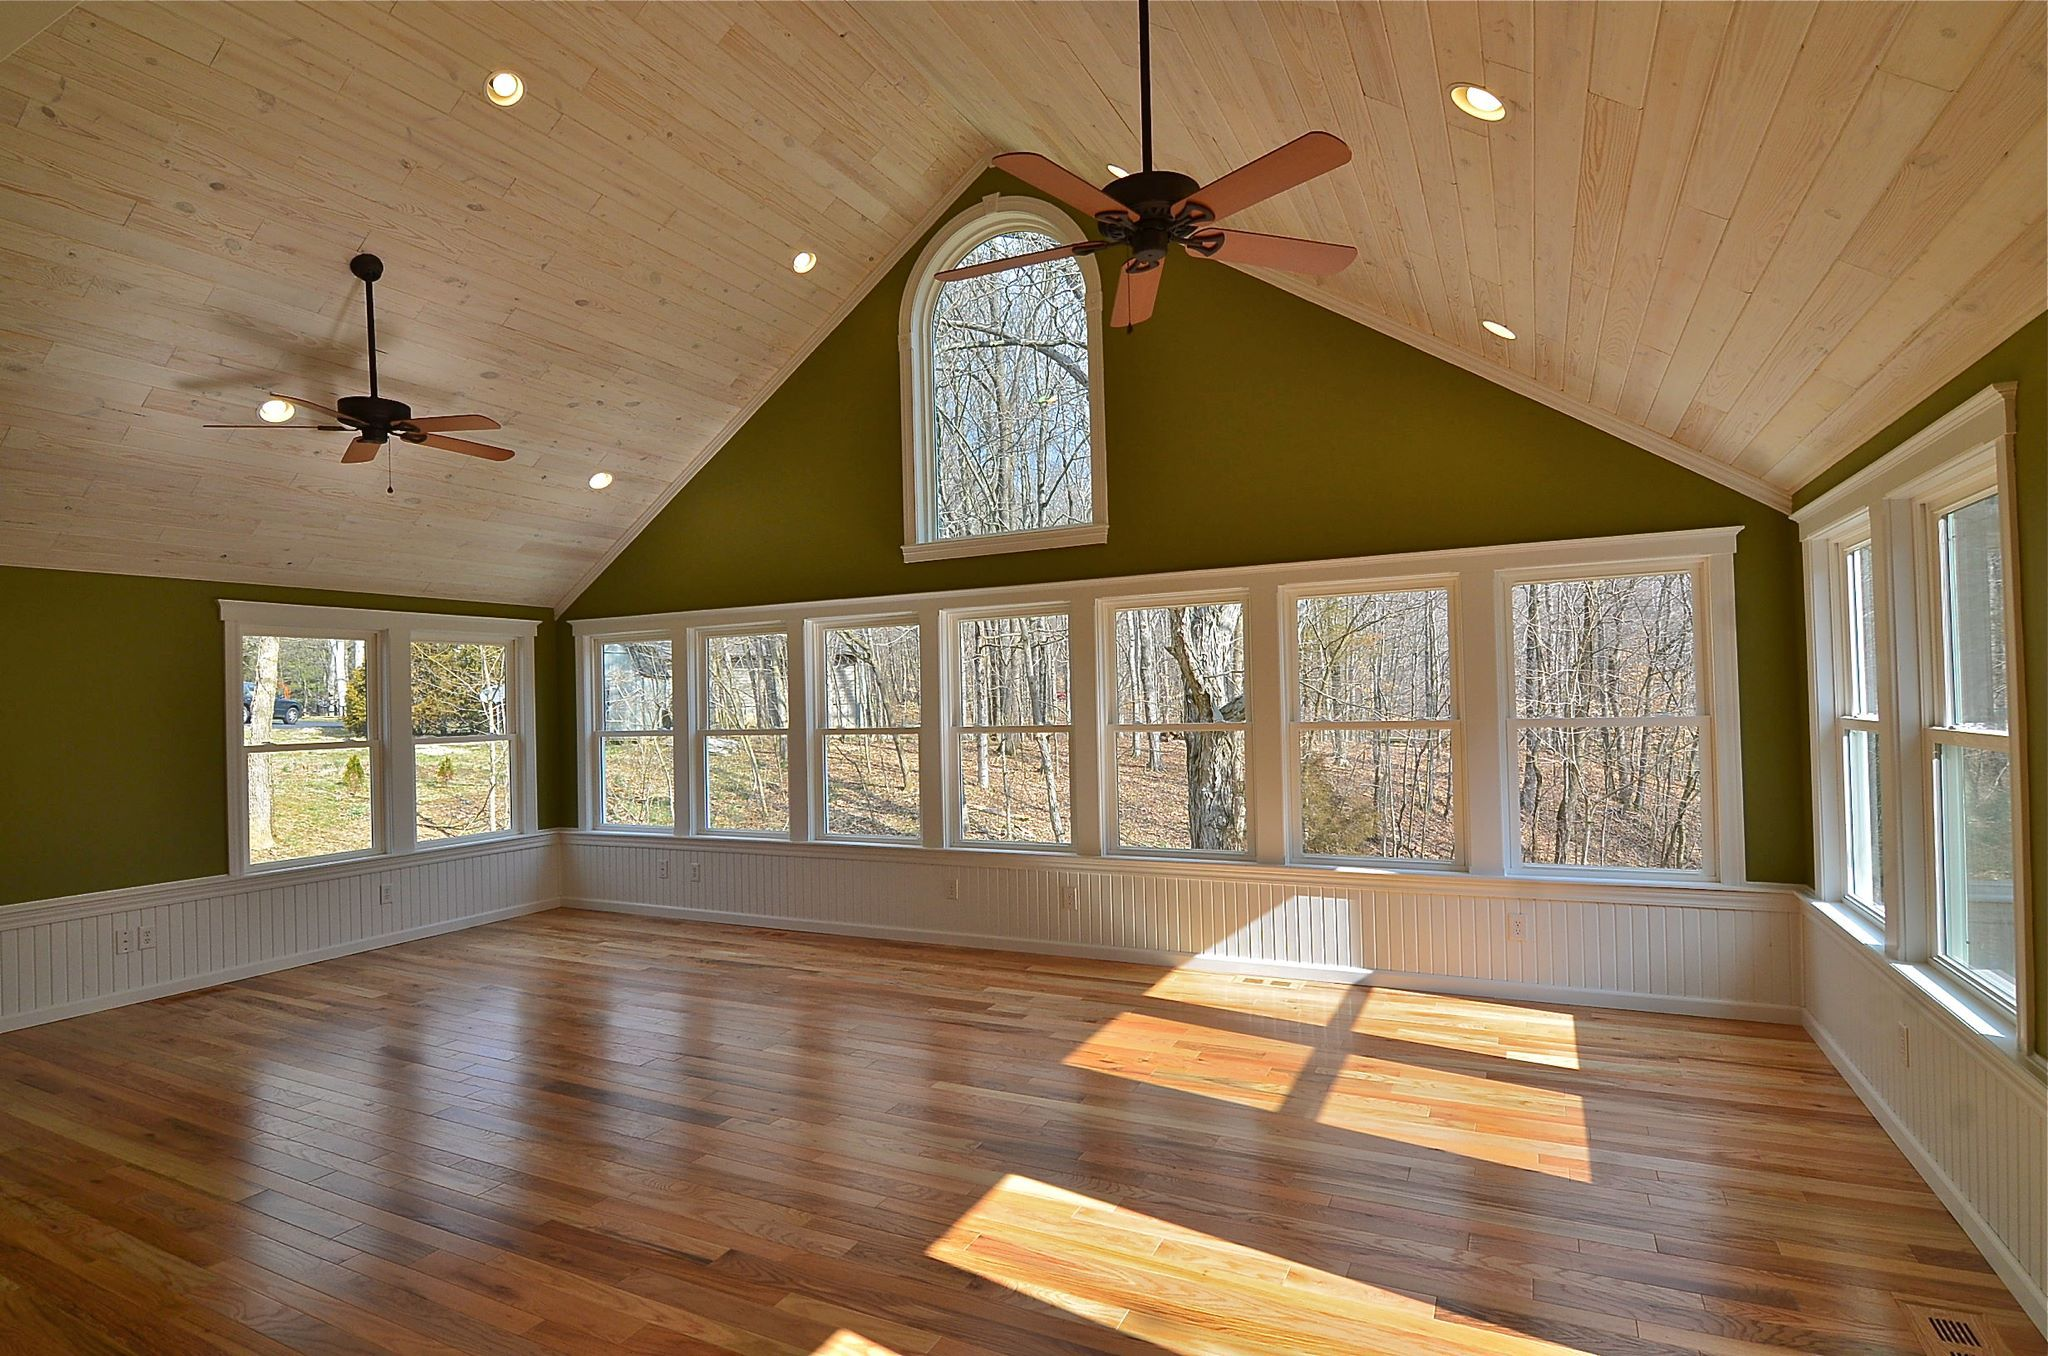 Check out my parent 39 s new sunroom it over looks a lake Ceiling window